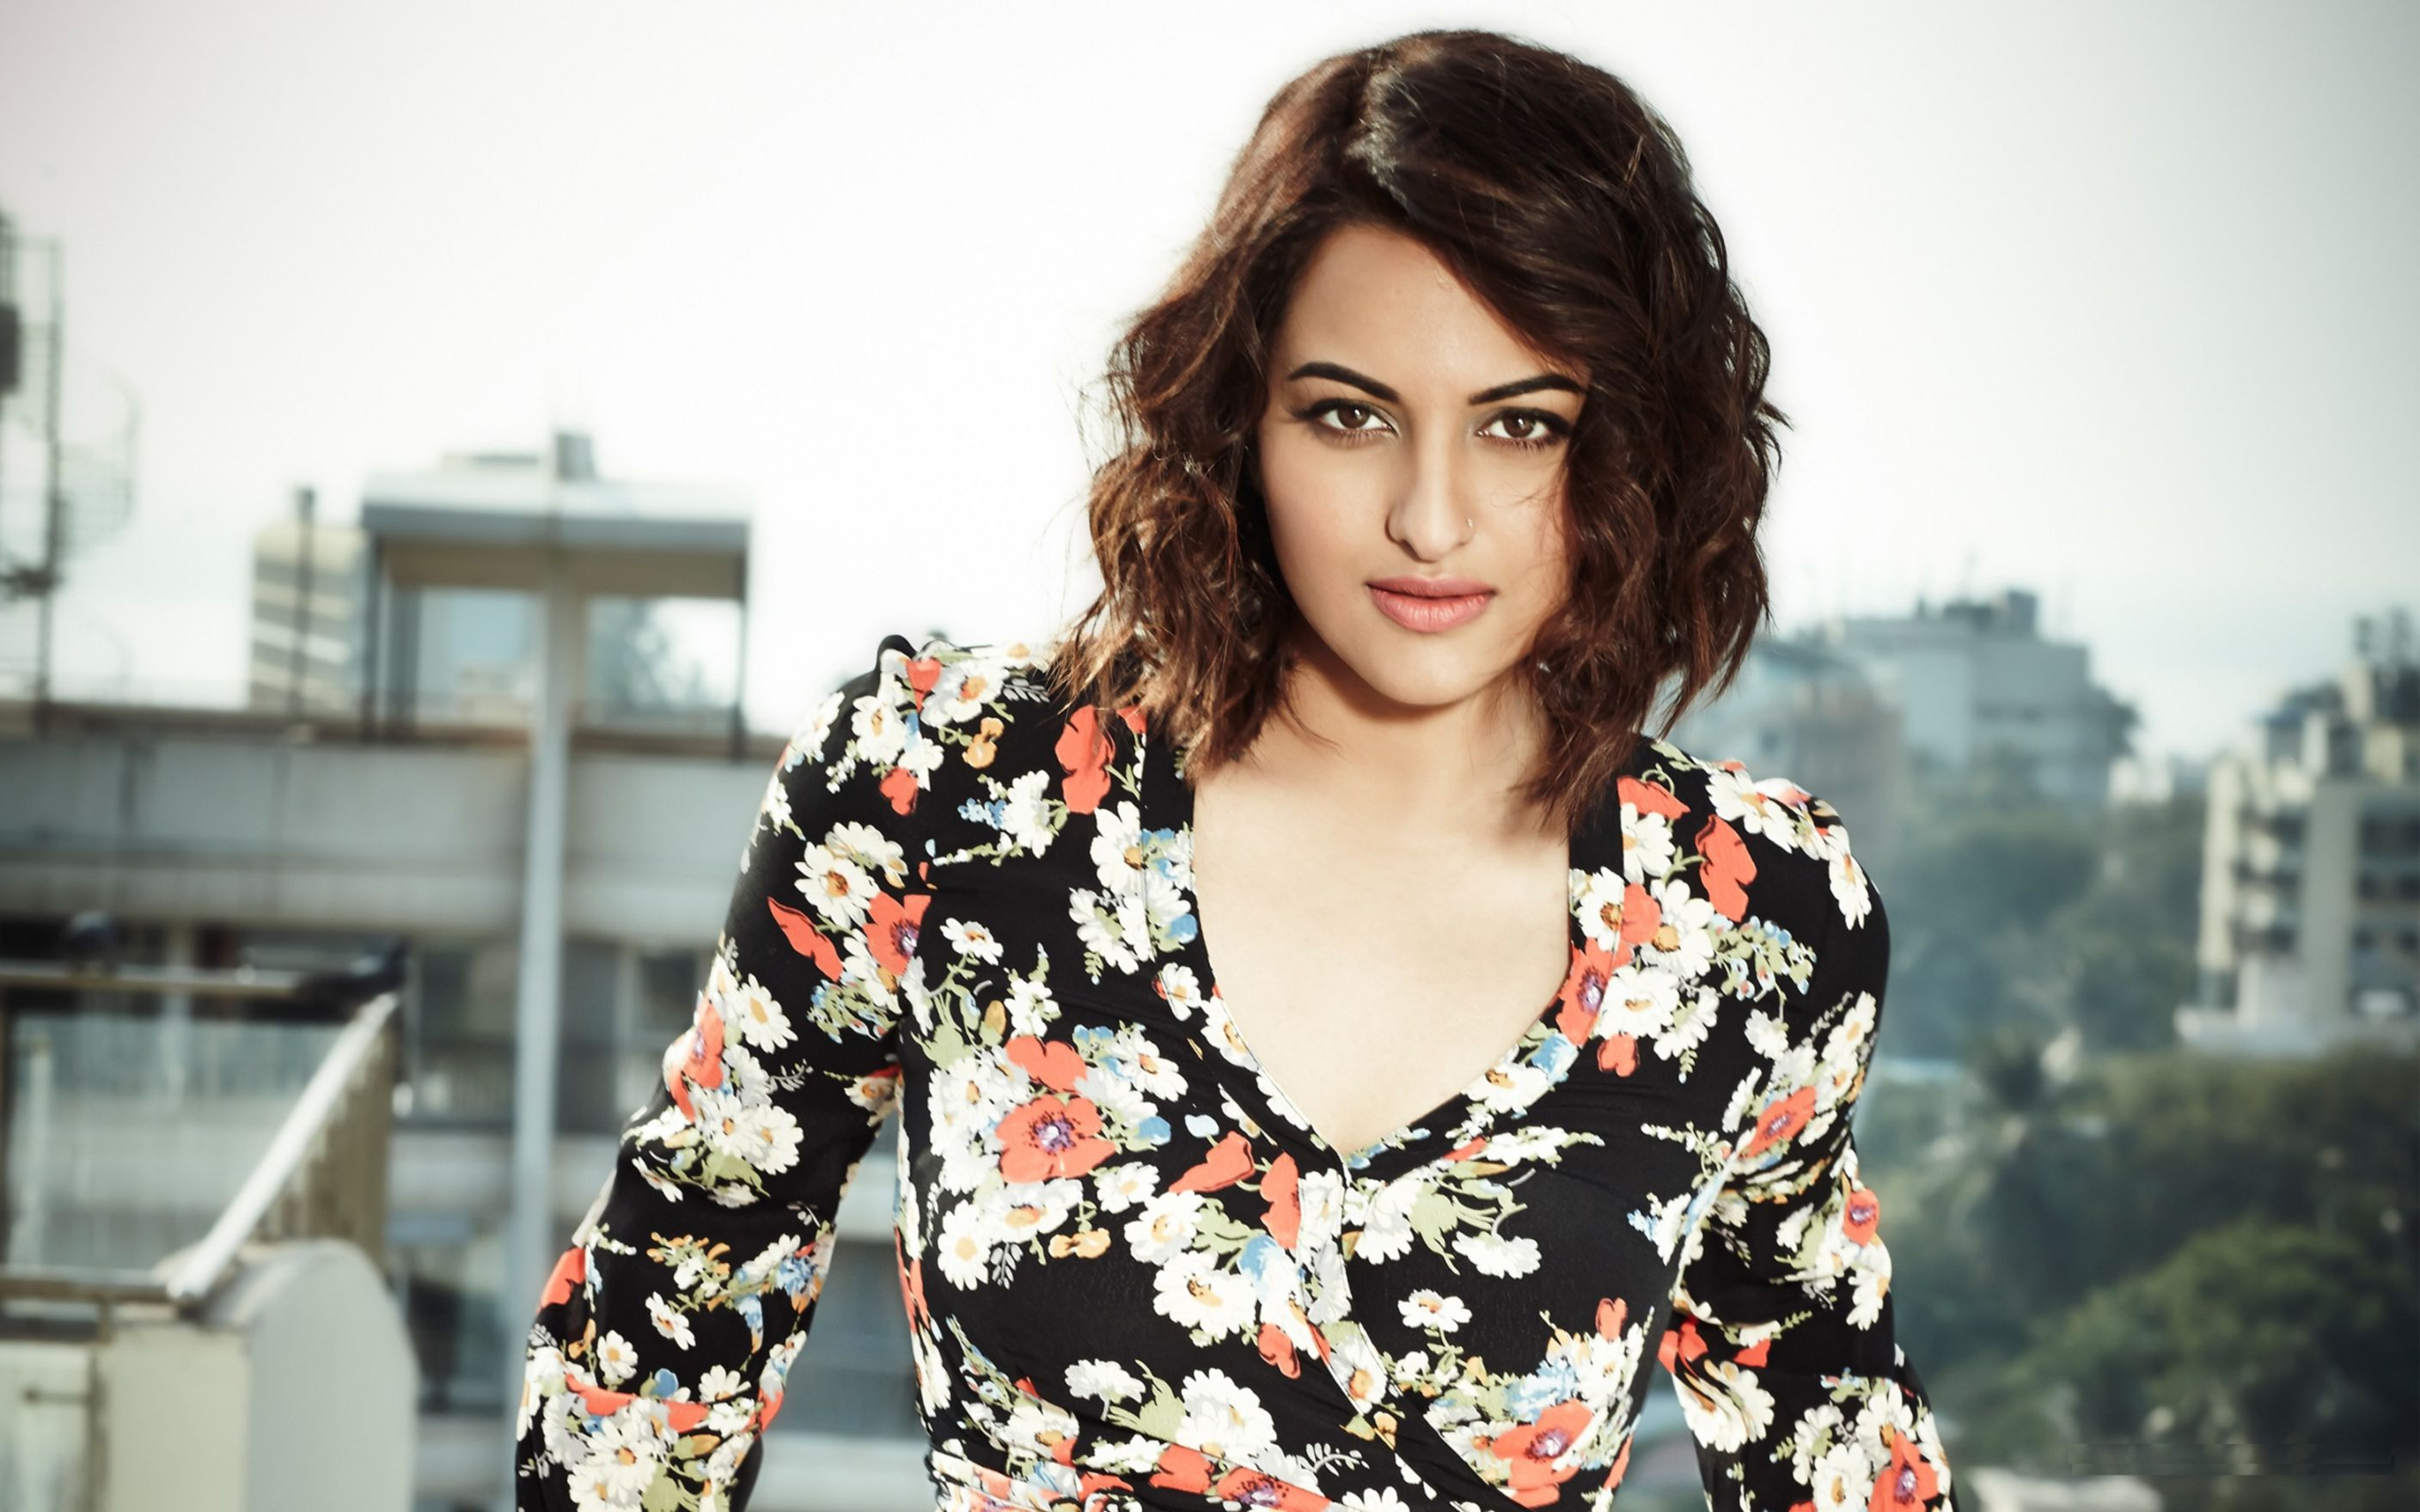 Download free HD Sonakshi Sinha 2015 Wallpaper, image